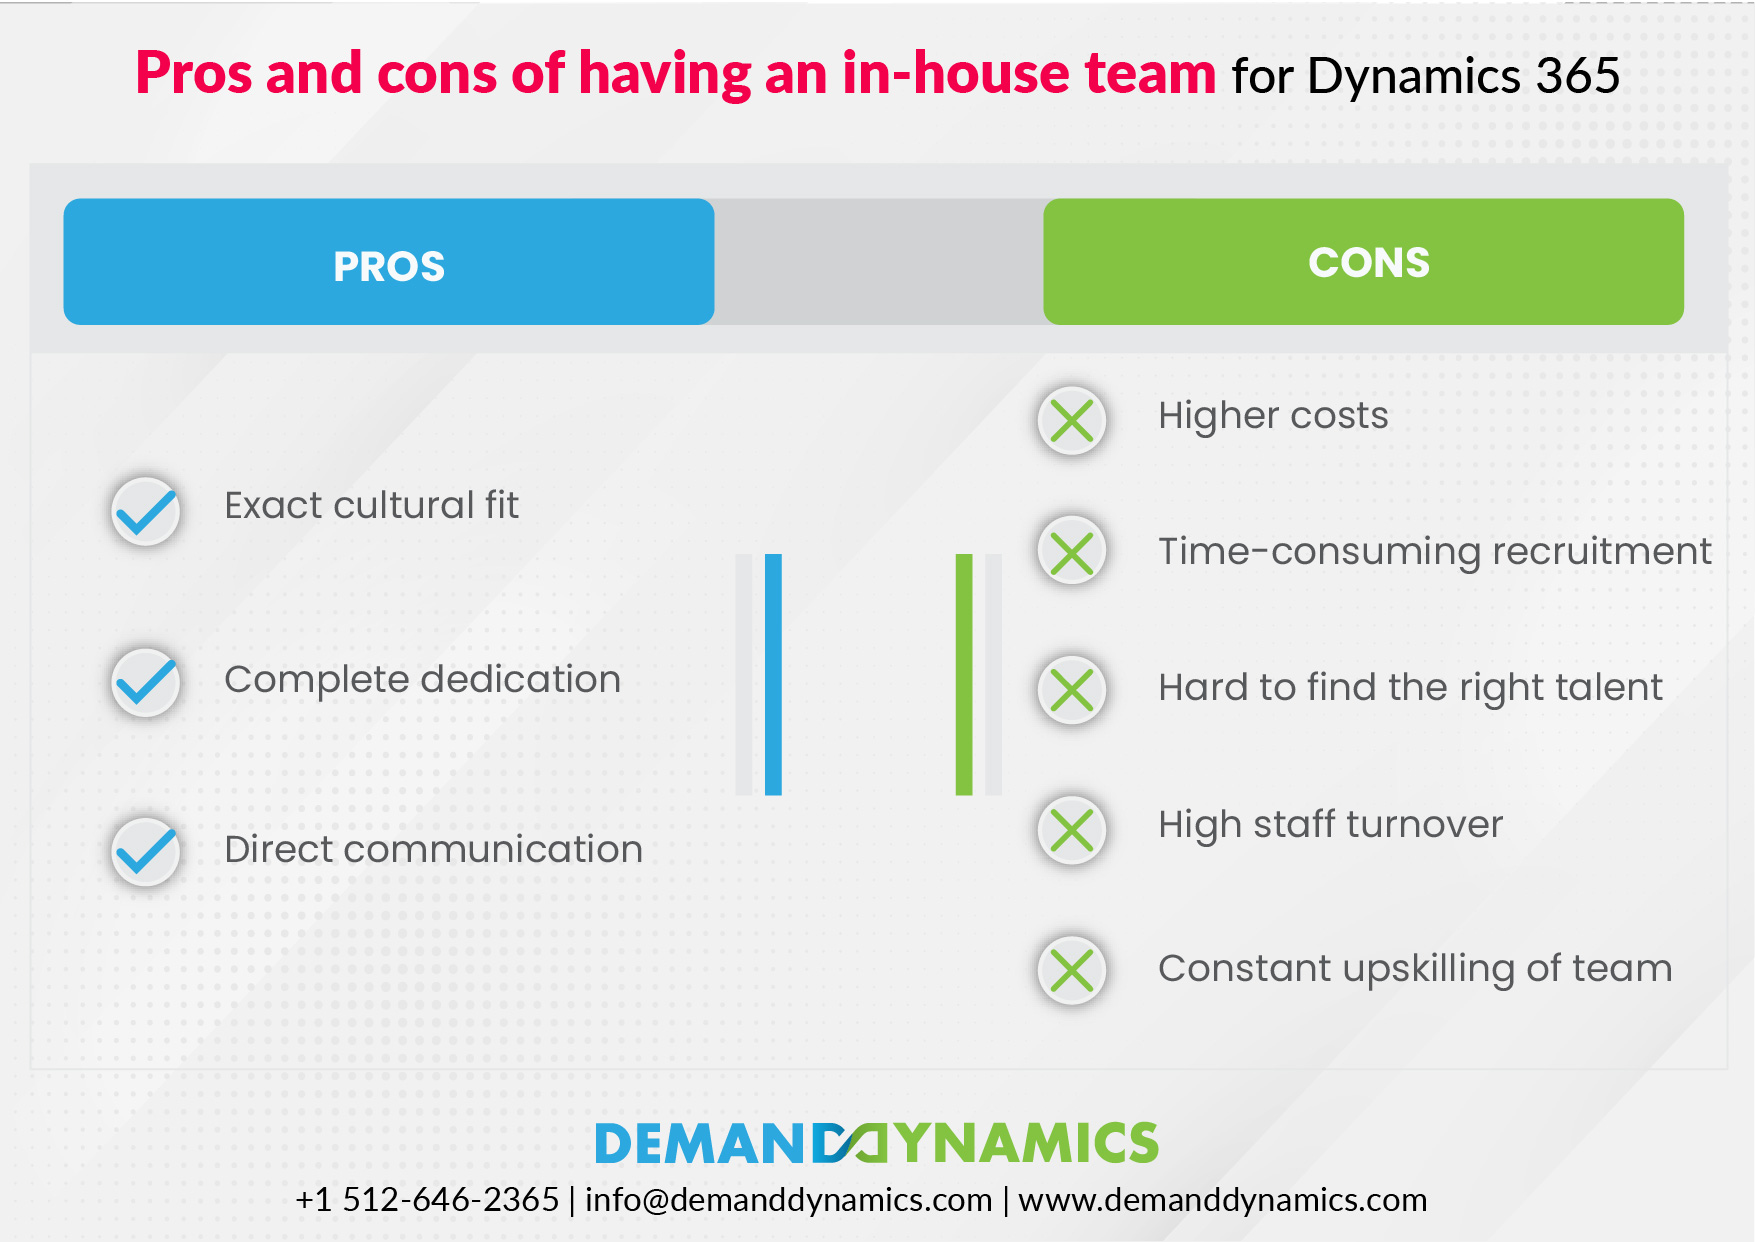 Pros and Cons of In-house team